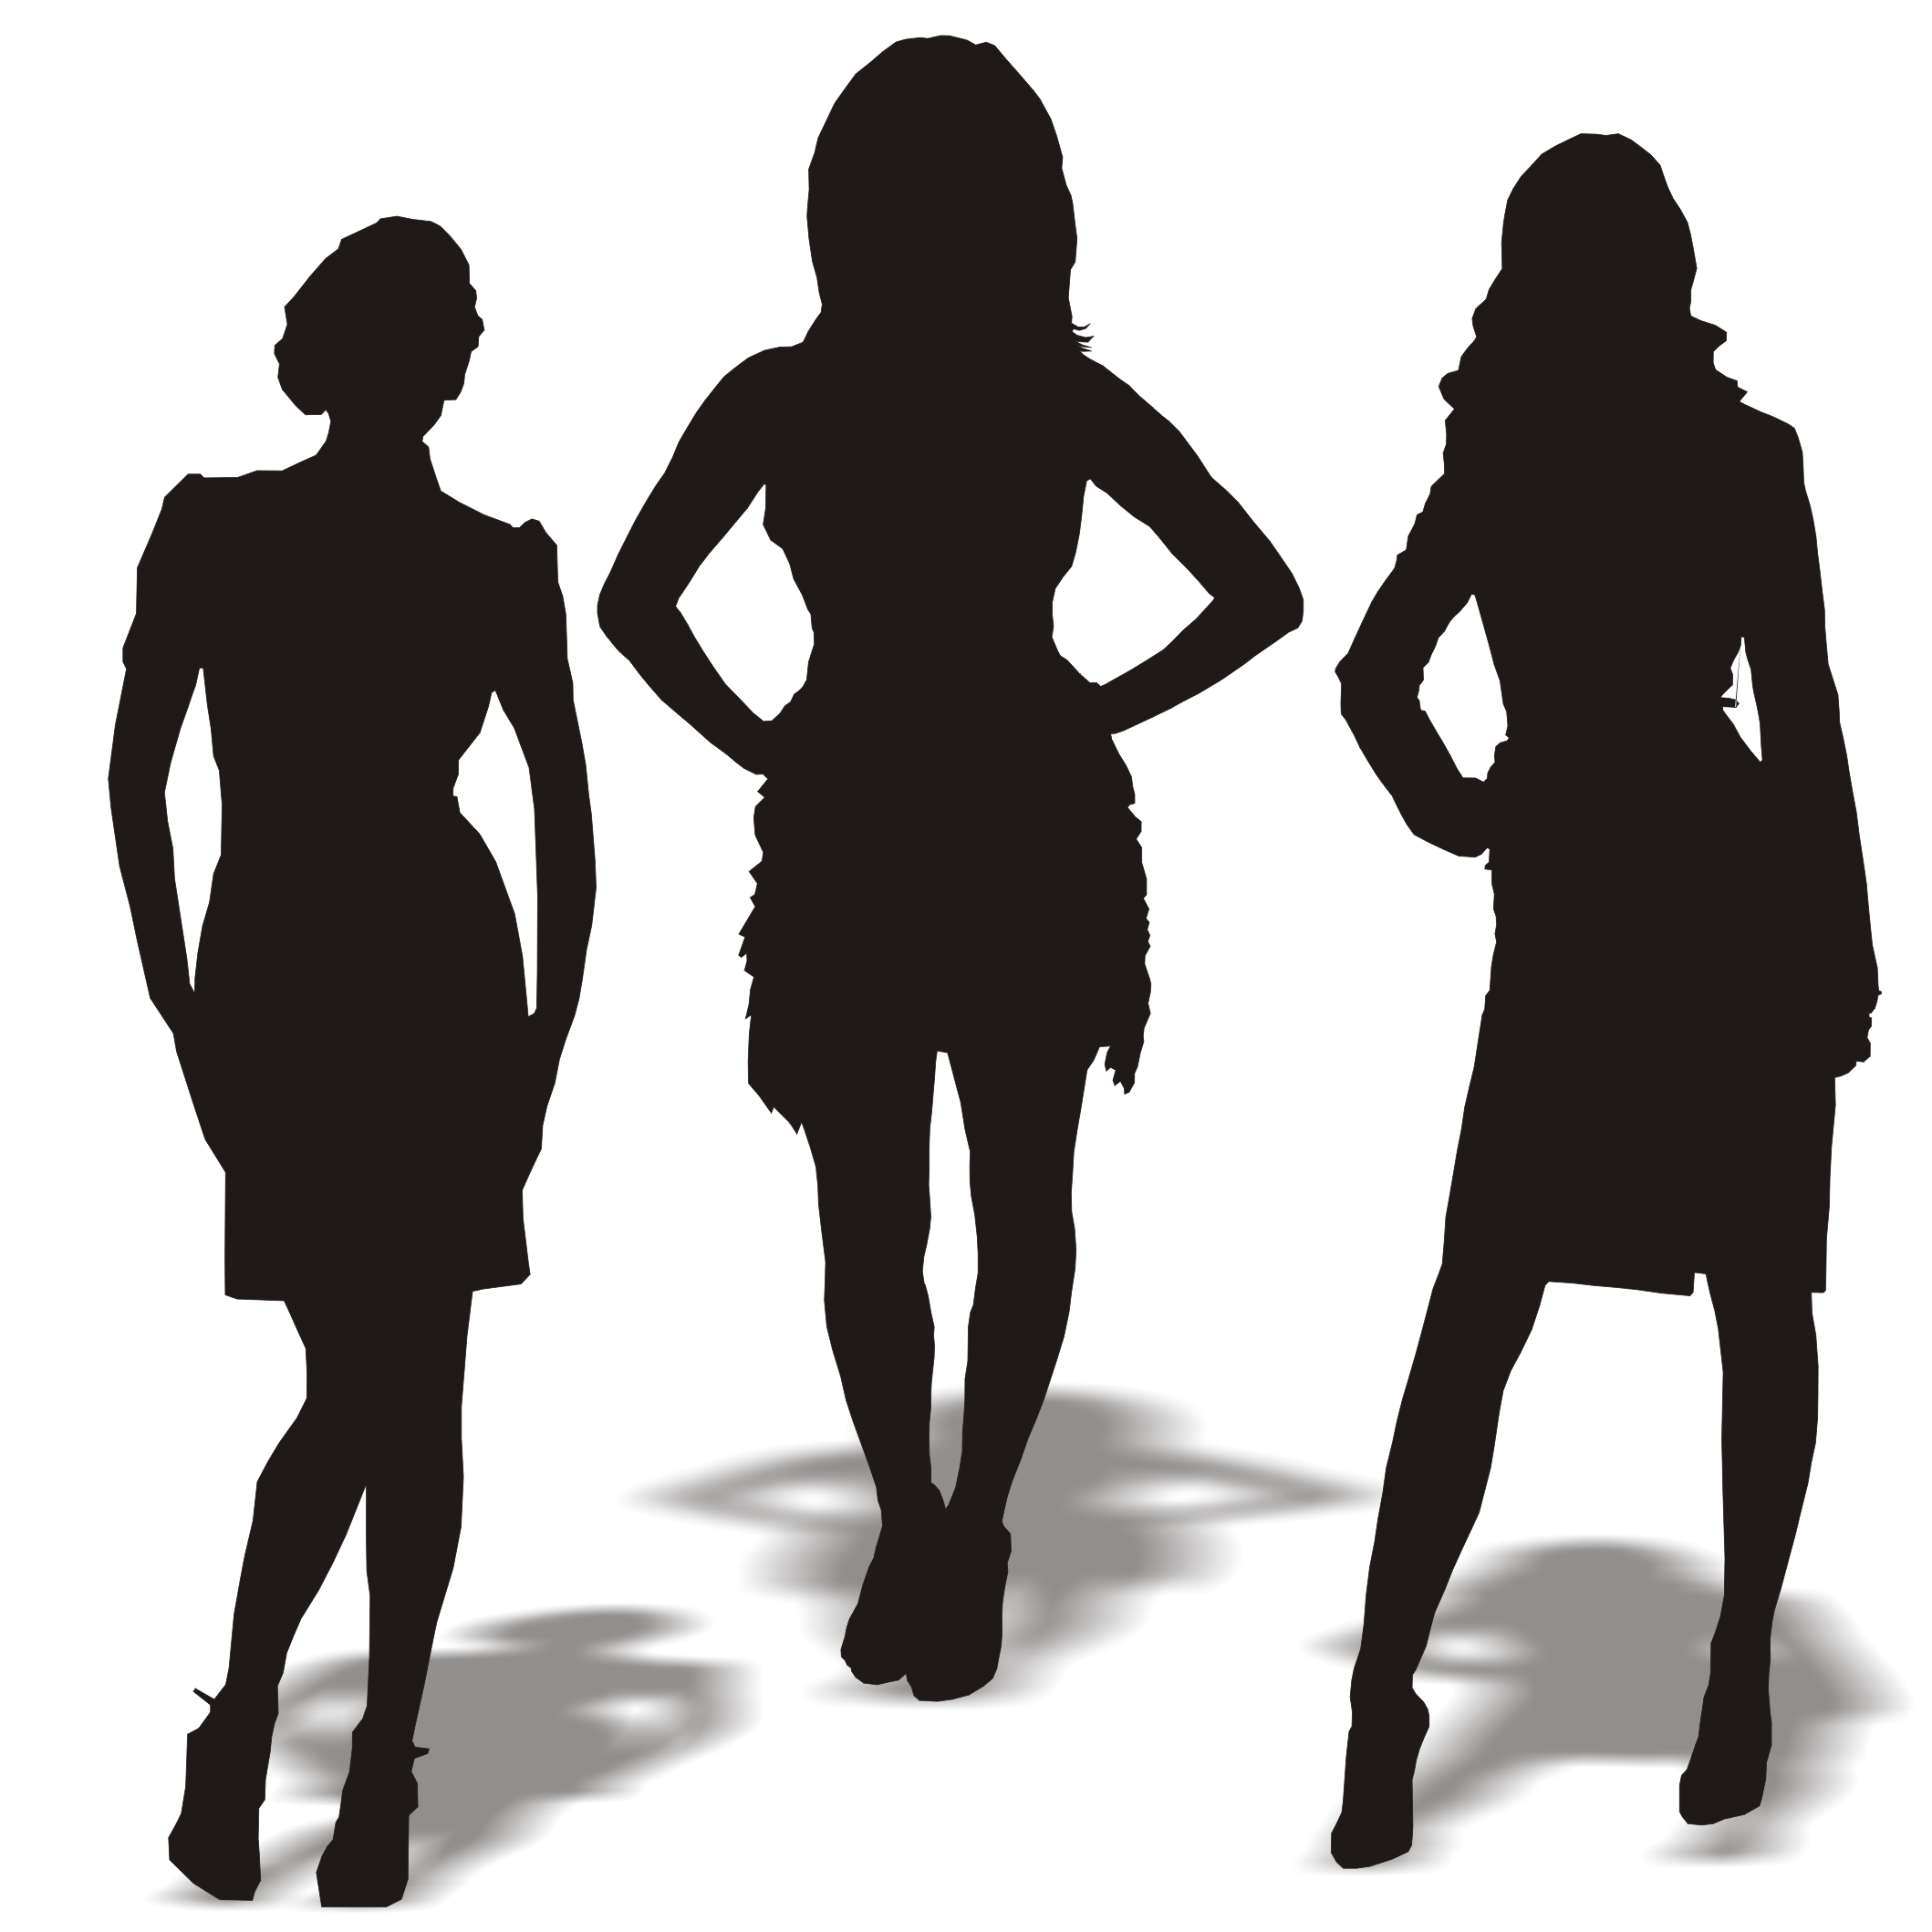 Free Woman Vector, Download Free Clip Art, Free Clip Art on.